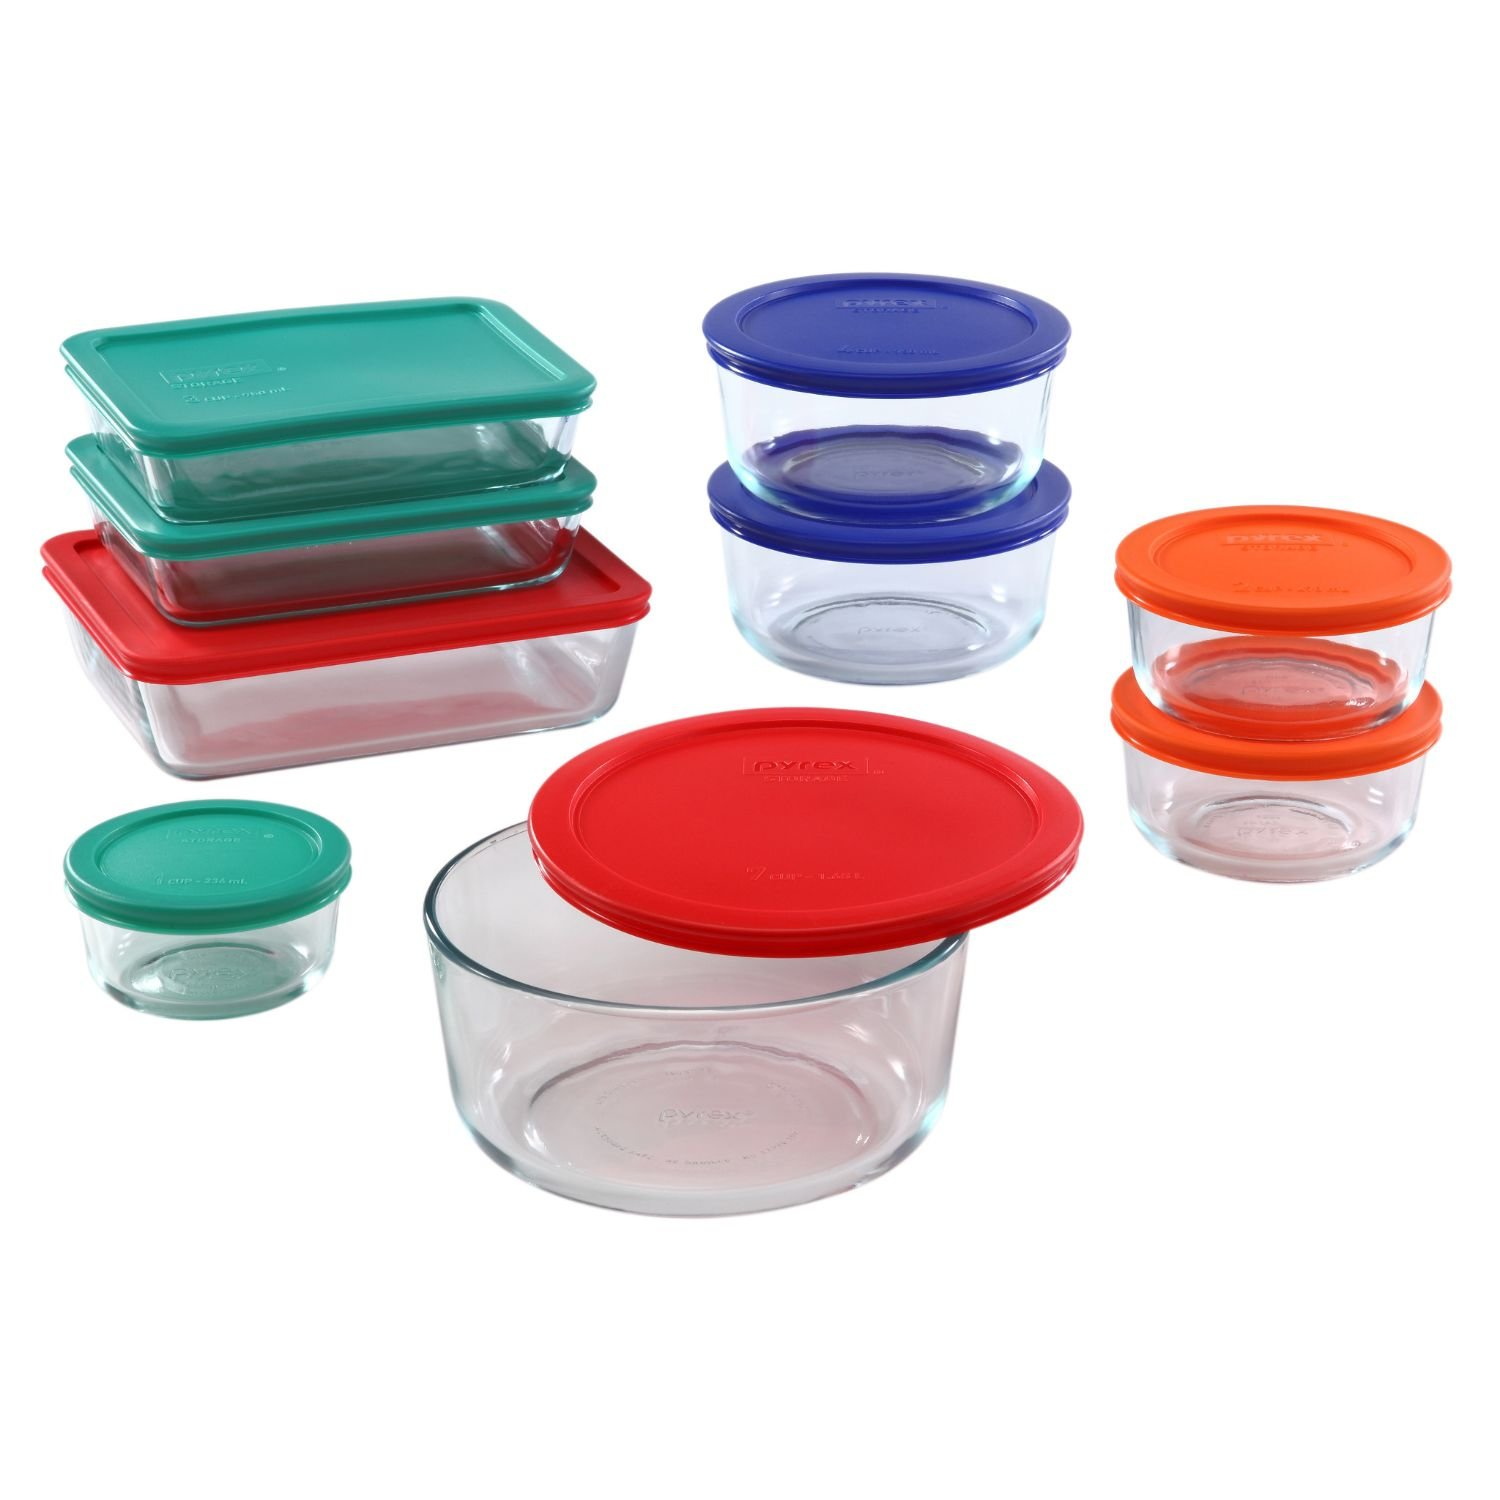 glass storage container, stainless steel tupperware storage, glass tupperware, safe food storage containers, best non toxic food storage containers, non toxic storage containers, best material for food storage, best tupperware, food safe containers, safe plastic storage containers, best glass tupperware, bpa free containers, microwave safe non plastic containers, food safe plastic containers, bpa free food containers, silicone food storage, best plastic food storage containers, healthy glass food storage containers, bpa free freezer containers, ceramic food storage containers, is tupperware bpa free, safe plastic containers, bpa free food storage containers, is tupperware safe, plastic tupperware, best glass food storage containers, safest glass storage containers, food grade plastic containers, plastic food storage, freezer safe containers, bpa free storage containers, is silicone safe for food storage, lead free glass storage containers, silicone storage containers, healthy containers,non toxic food storage,plastic containers without bpa, non toxic plastic containers, safe plastic food storage containers, stainless steel tupperware, best food storage containers 2017, best glass food storage containers 2017, stainless steel containers with plastic lids, non toxic food storage containers, healthy food storage containers, is glass tupperware oven safe, lightweight glass tupperware, silicone food containers, best food storage containers, non plastic freezer containers, non plastic containers, freezer safe containers bpa free, non bpa tupperware, stainless steel food containers safe, are plastic containers safe for food storage, ceramic tupperware, quality food containers, best fridge containers, is it safe to store food in plastic containers, safe glass food storage containers, best glass storage containers, glass containers with silicone lids, bpa free plastic storage containers, food grade storage containers, plastic food storage containers, natural food storage, best storage containers for refrigerator, best tupperware for microwave, non plastic food storage bags, bpa and phthalate free containers, ceramic food storage bowl set, is it safe to store food in plastic, best tupperware set, non bpa plastic containers, best glass tupperware set, glass food storage containers with plastic lids, bpa free food storage containers uk, best plastic containers for freezing food, pyrex bpa